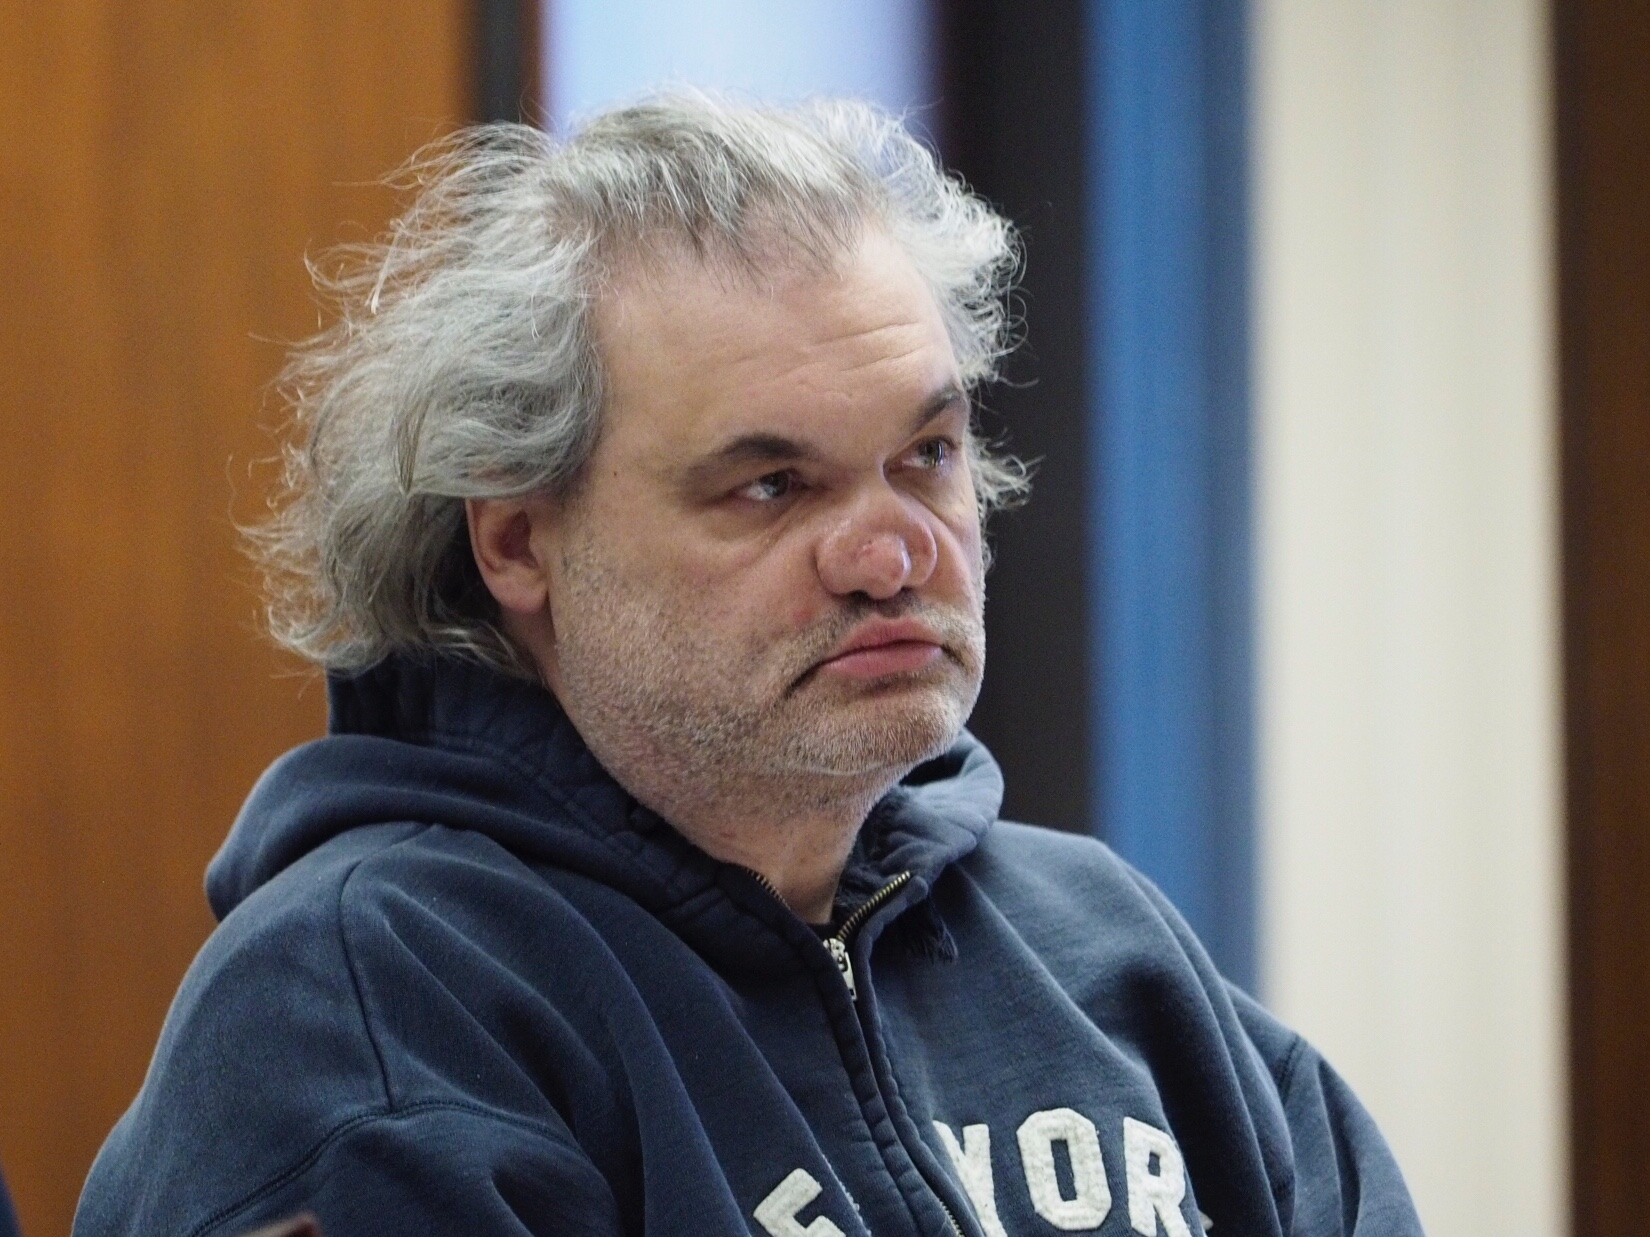 Artie Lange avoids jail but tests positive for cocaine at